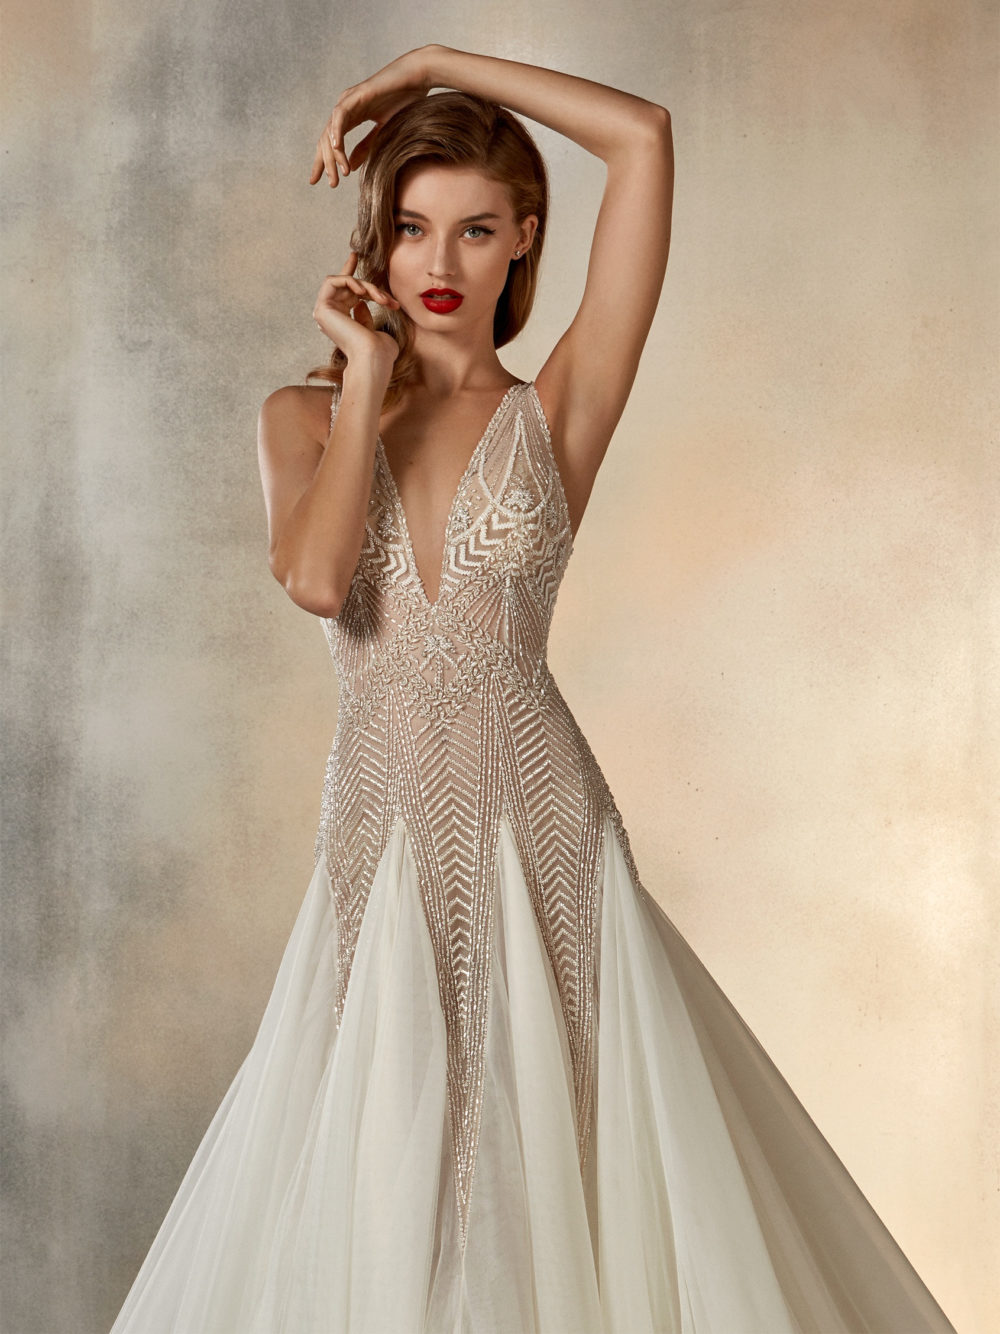 Pronovias Star Dreaming Wedding Gown Dress 2020 Atelier Collection Detail